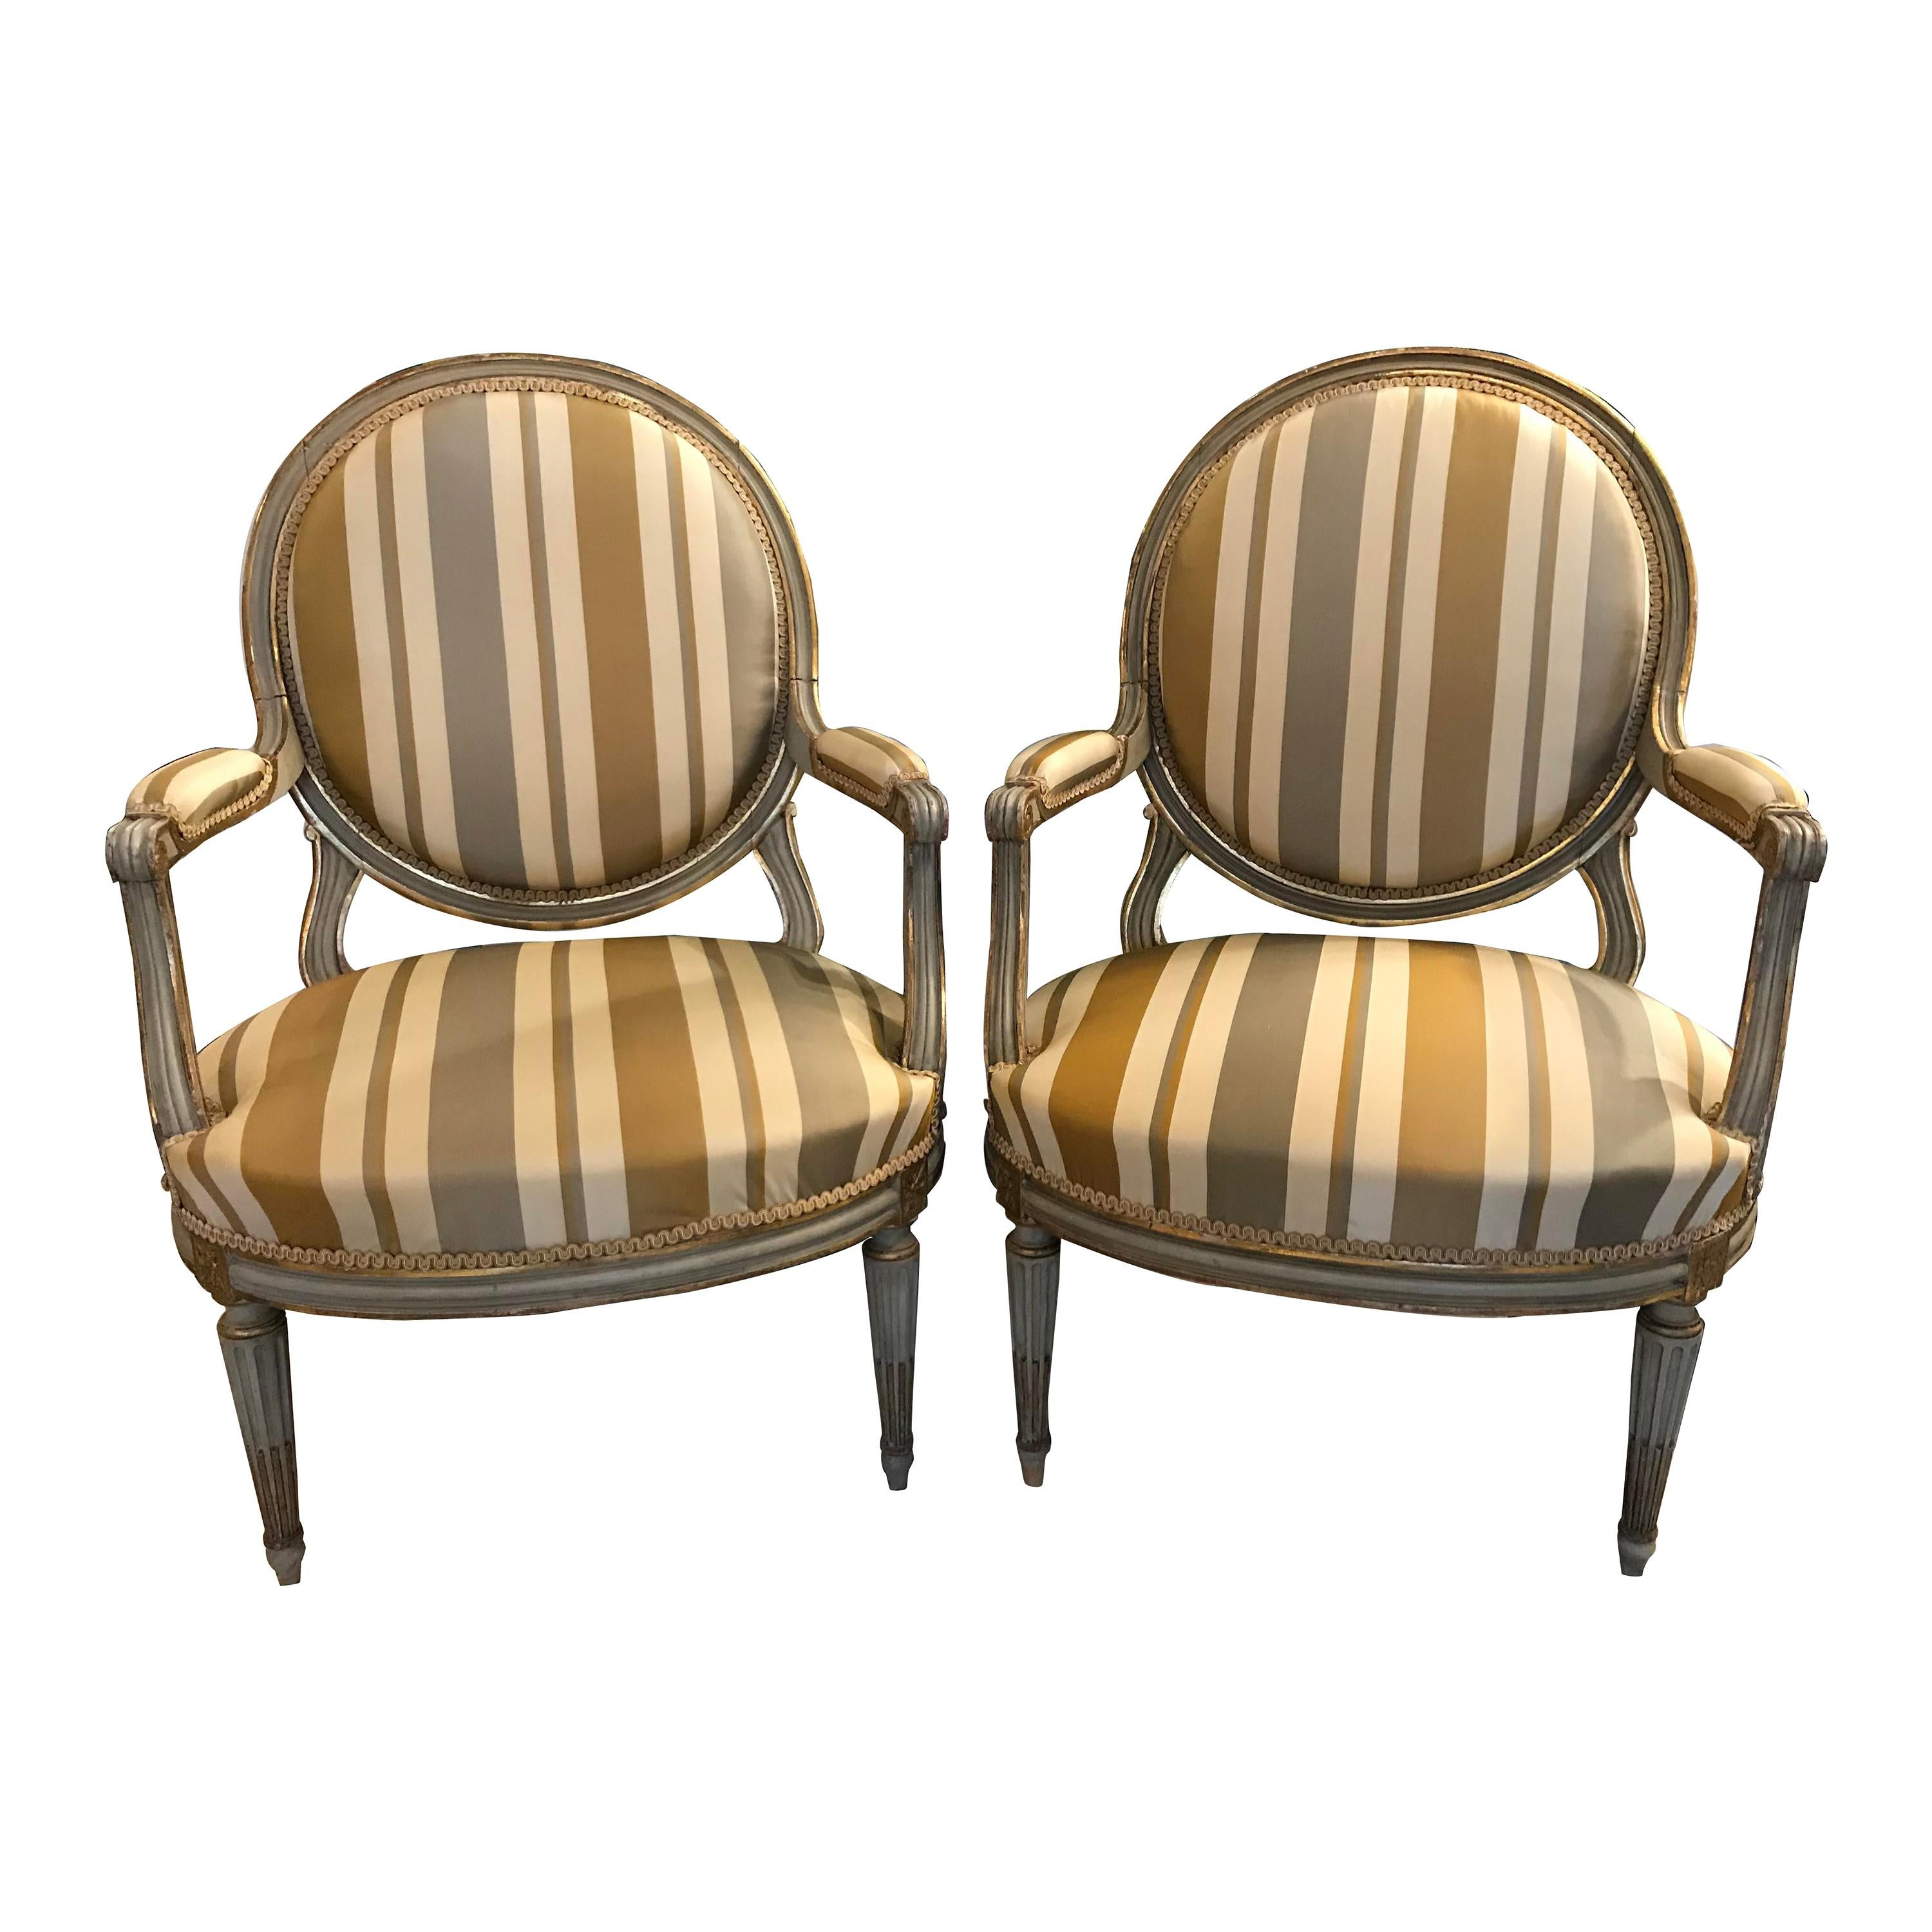 Pair Of French 18th Century Painted Armchairs